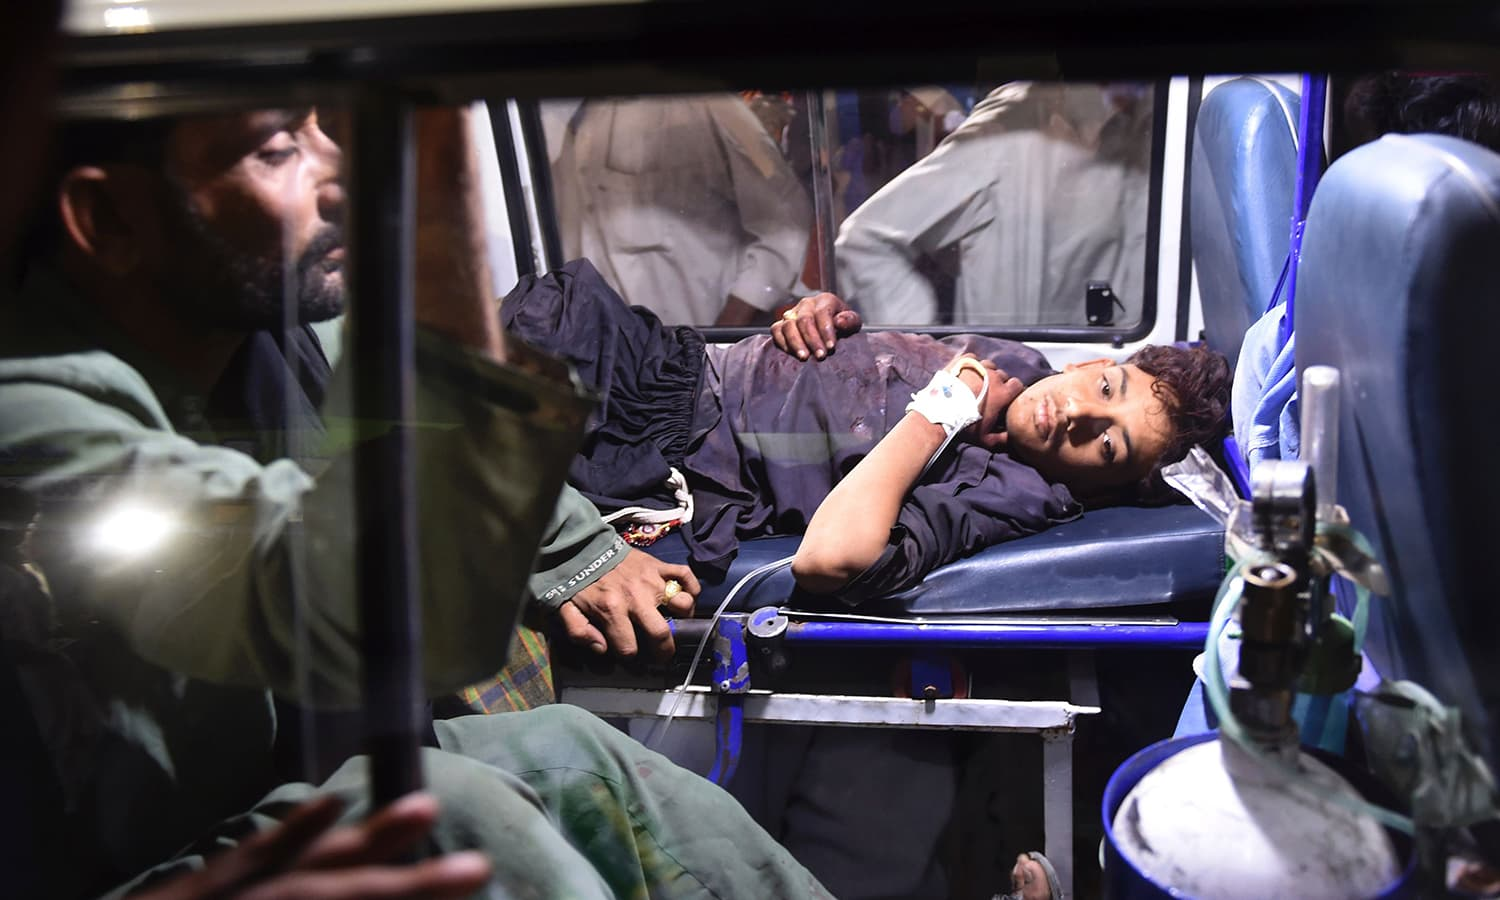 Rescuers transport an injured person to a hospital in Karachi. ─ AFP